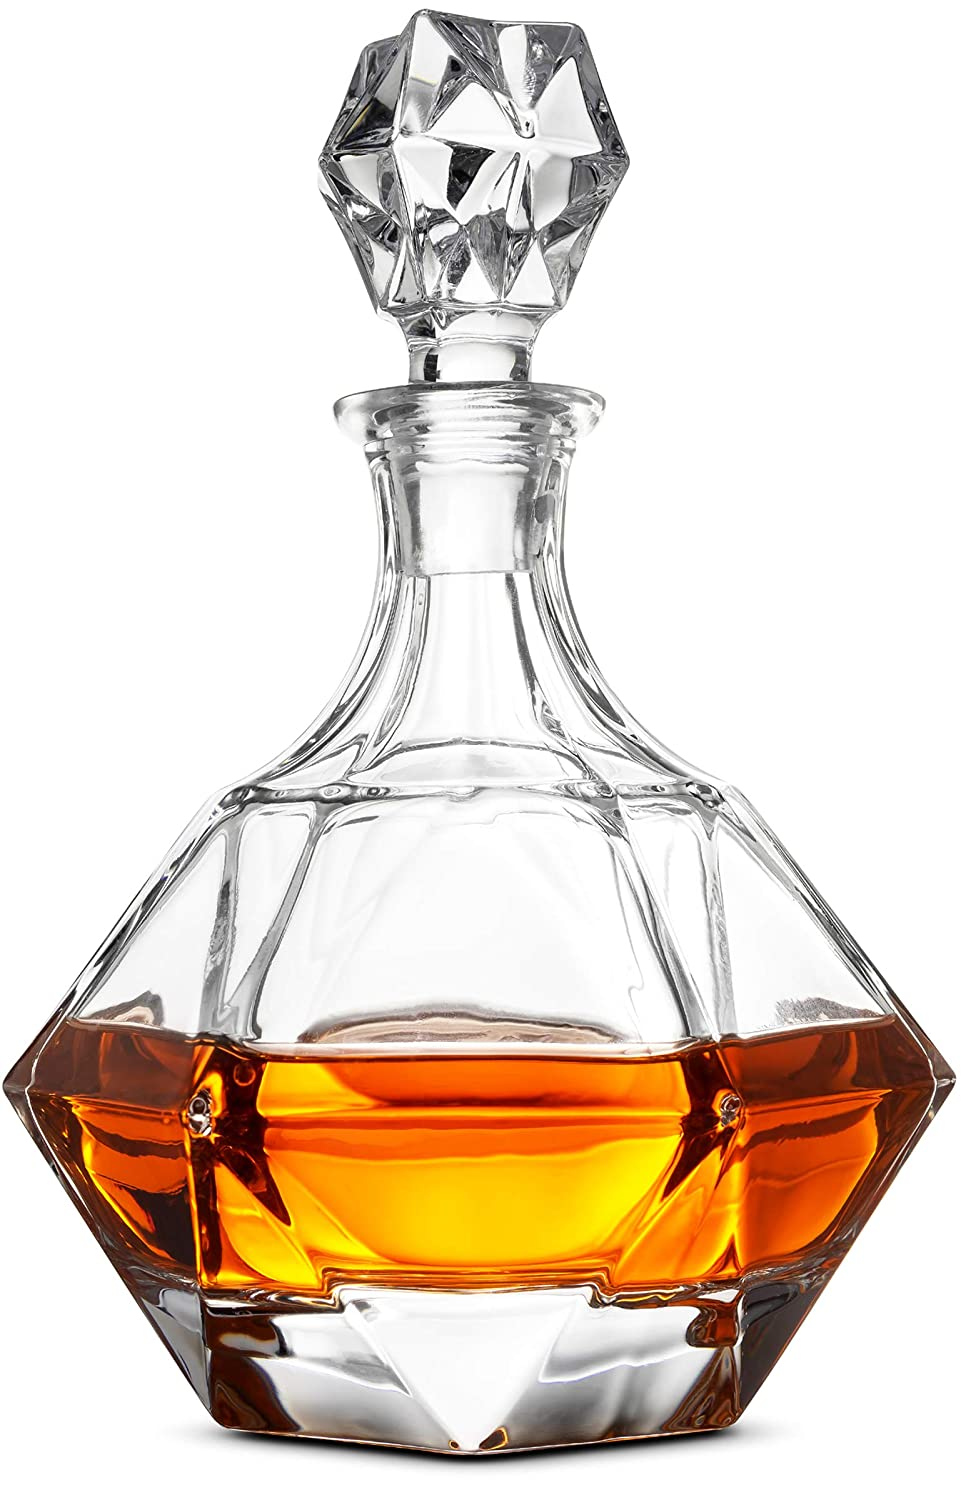 Glass Whiskey Liquor Decanter - High-End Modern Wine Decanter Weighted Bottom European Design 100% Lead Free Crystal Clear For Scotch, Liquor, Bourbon Etc. Whiskey Decanter With Magnetic Gift Box FD-G802